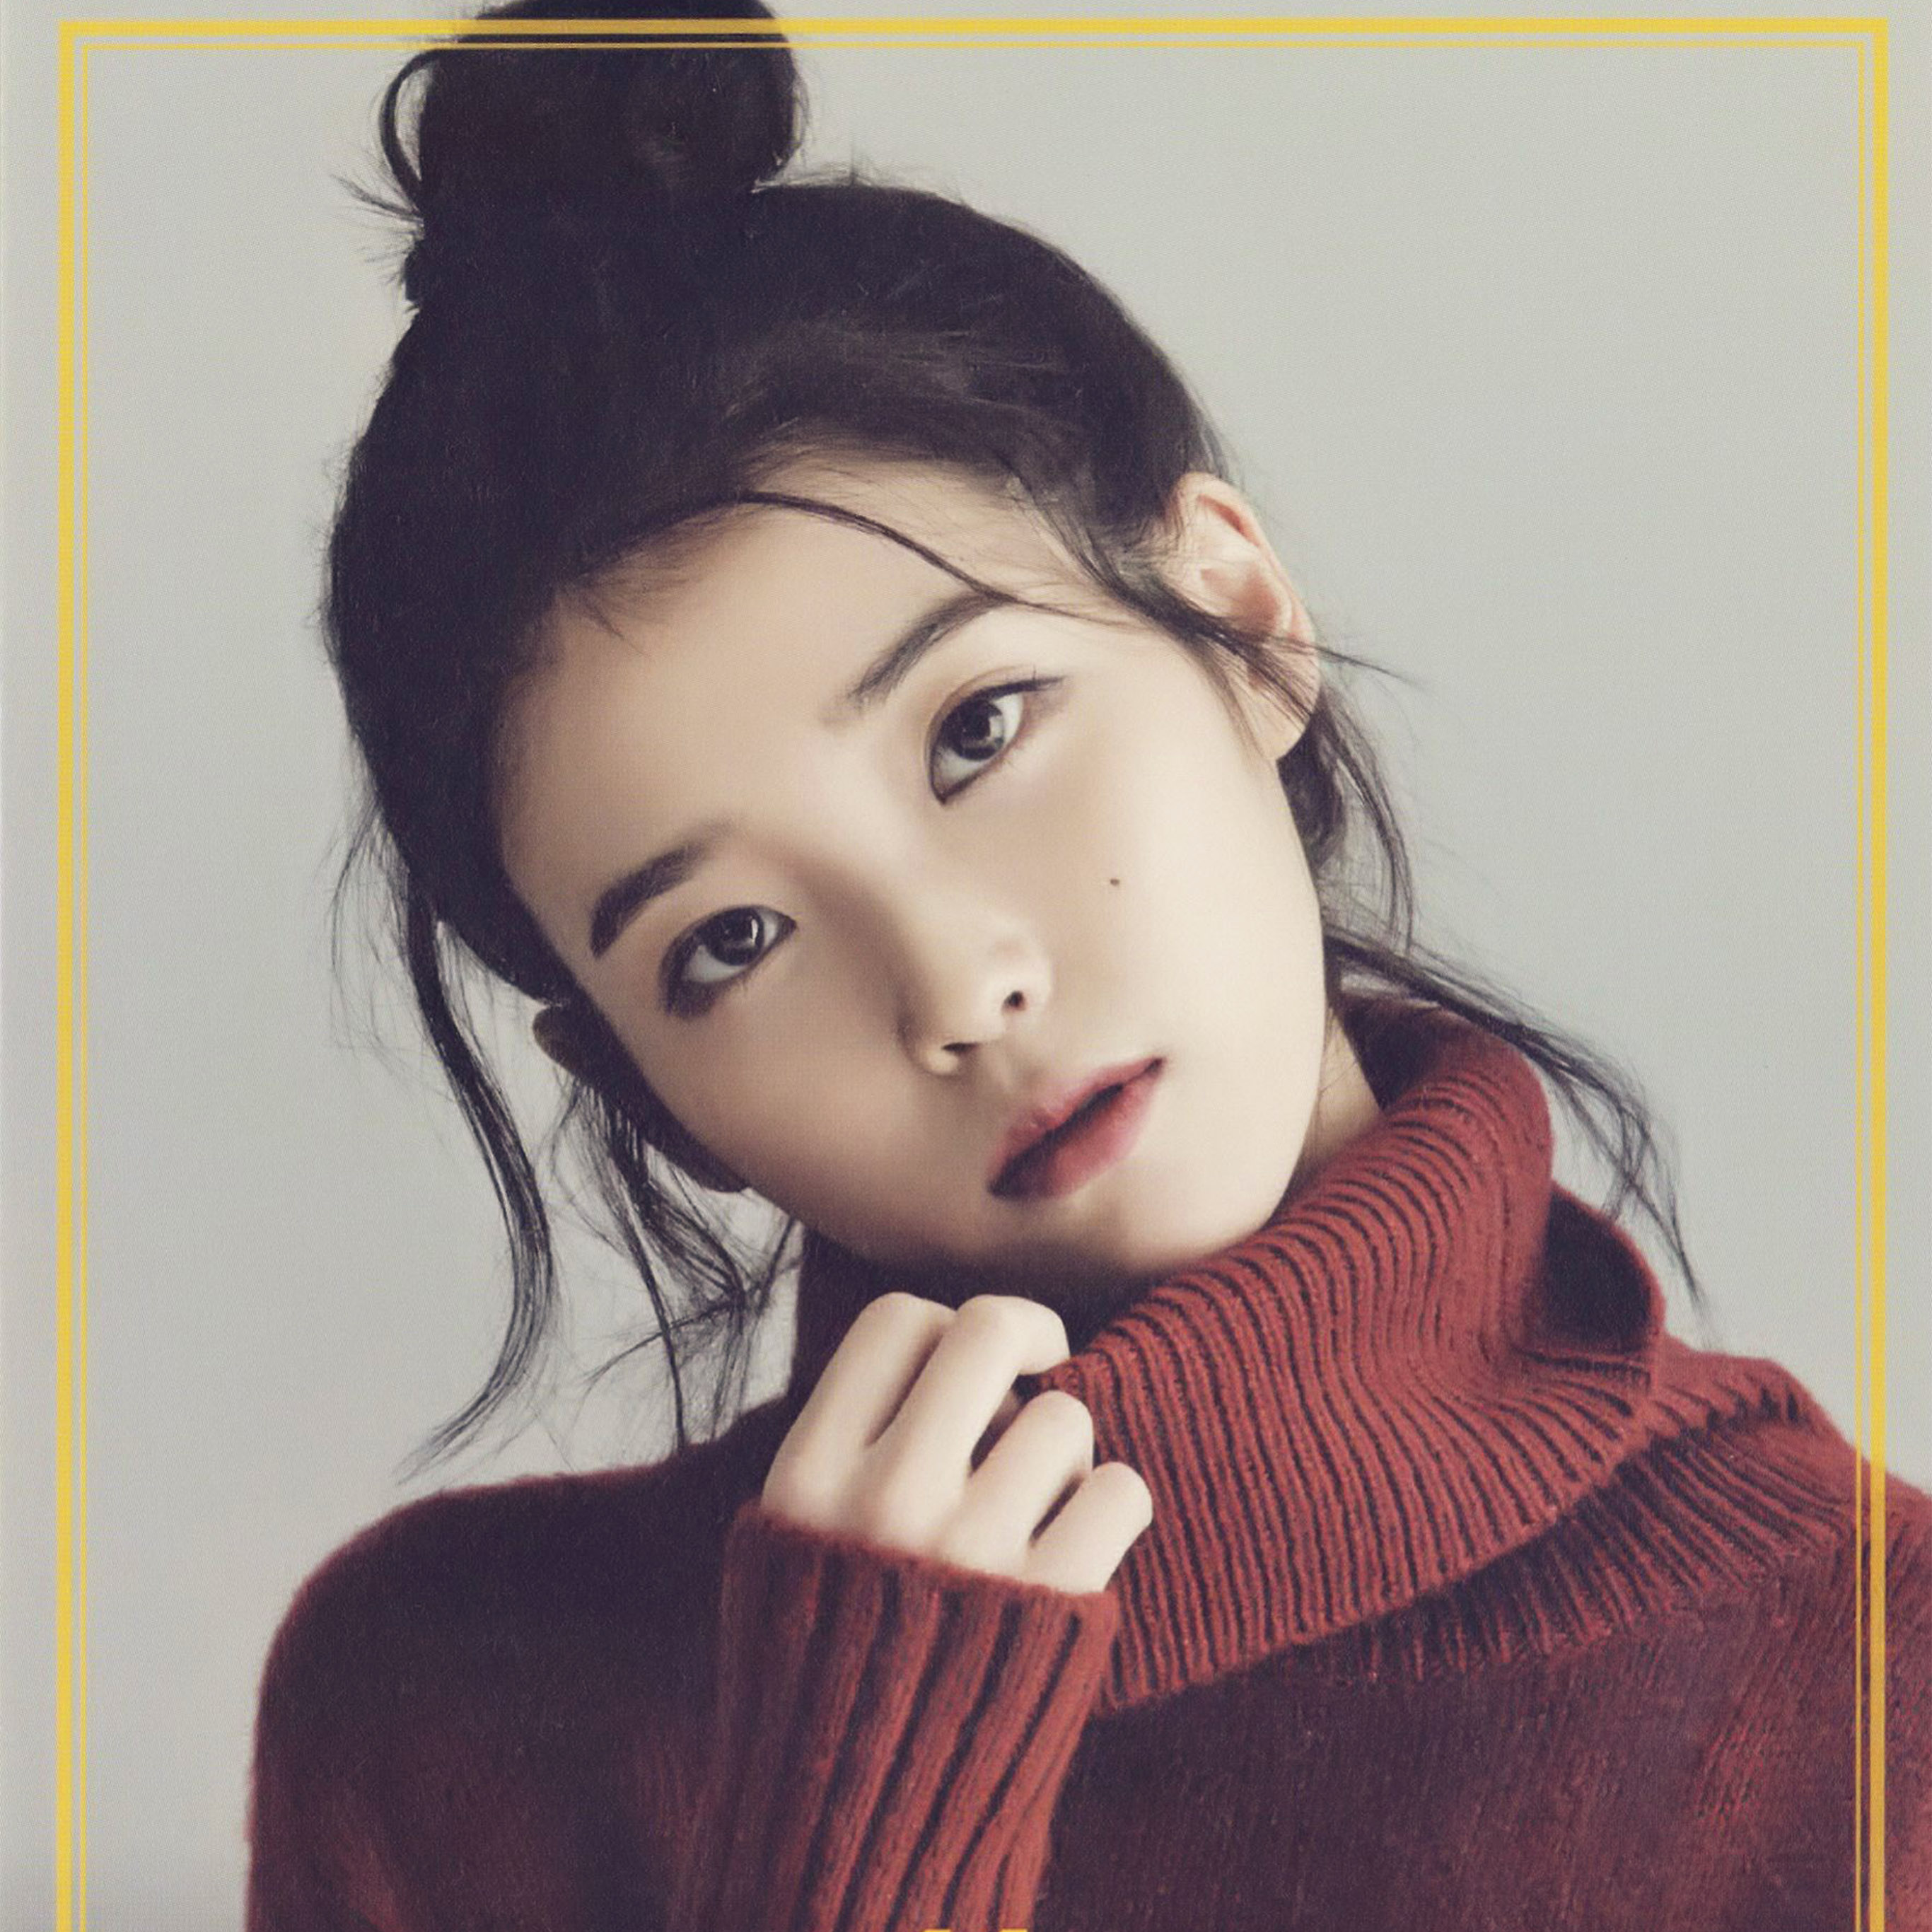 Hn83 Iu Kpop Girl Singer Artist Cute Wallpaper